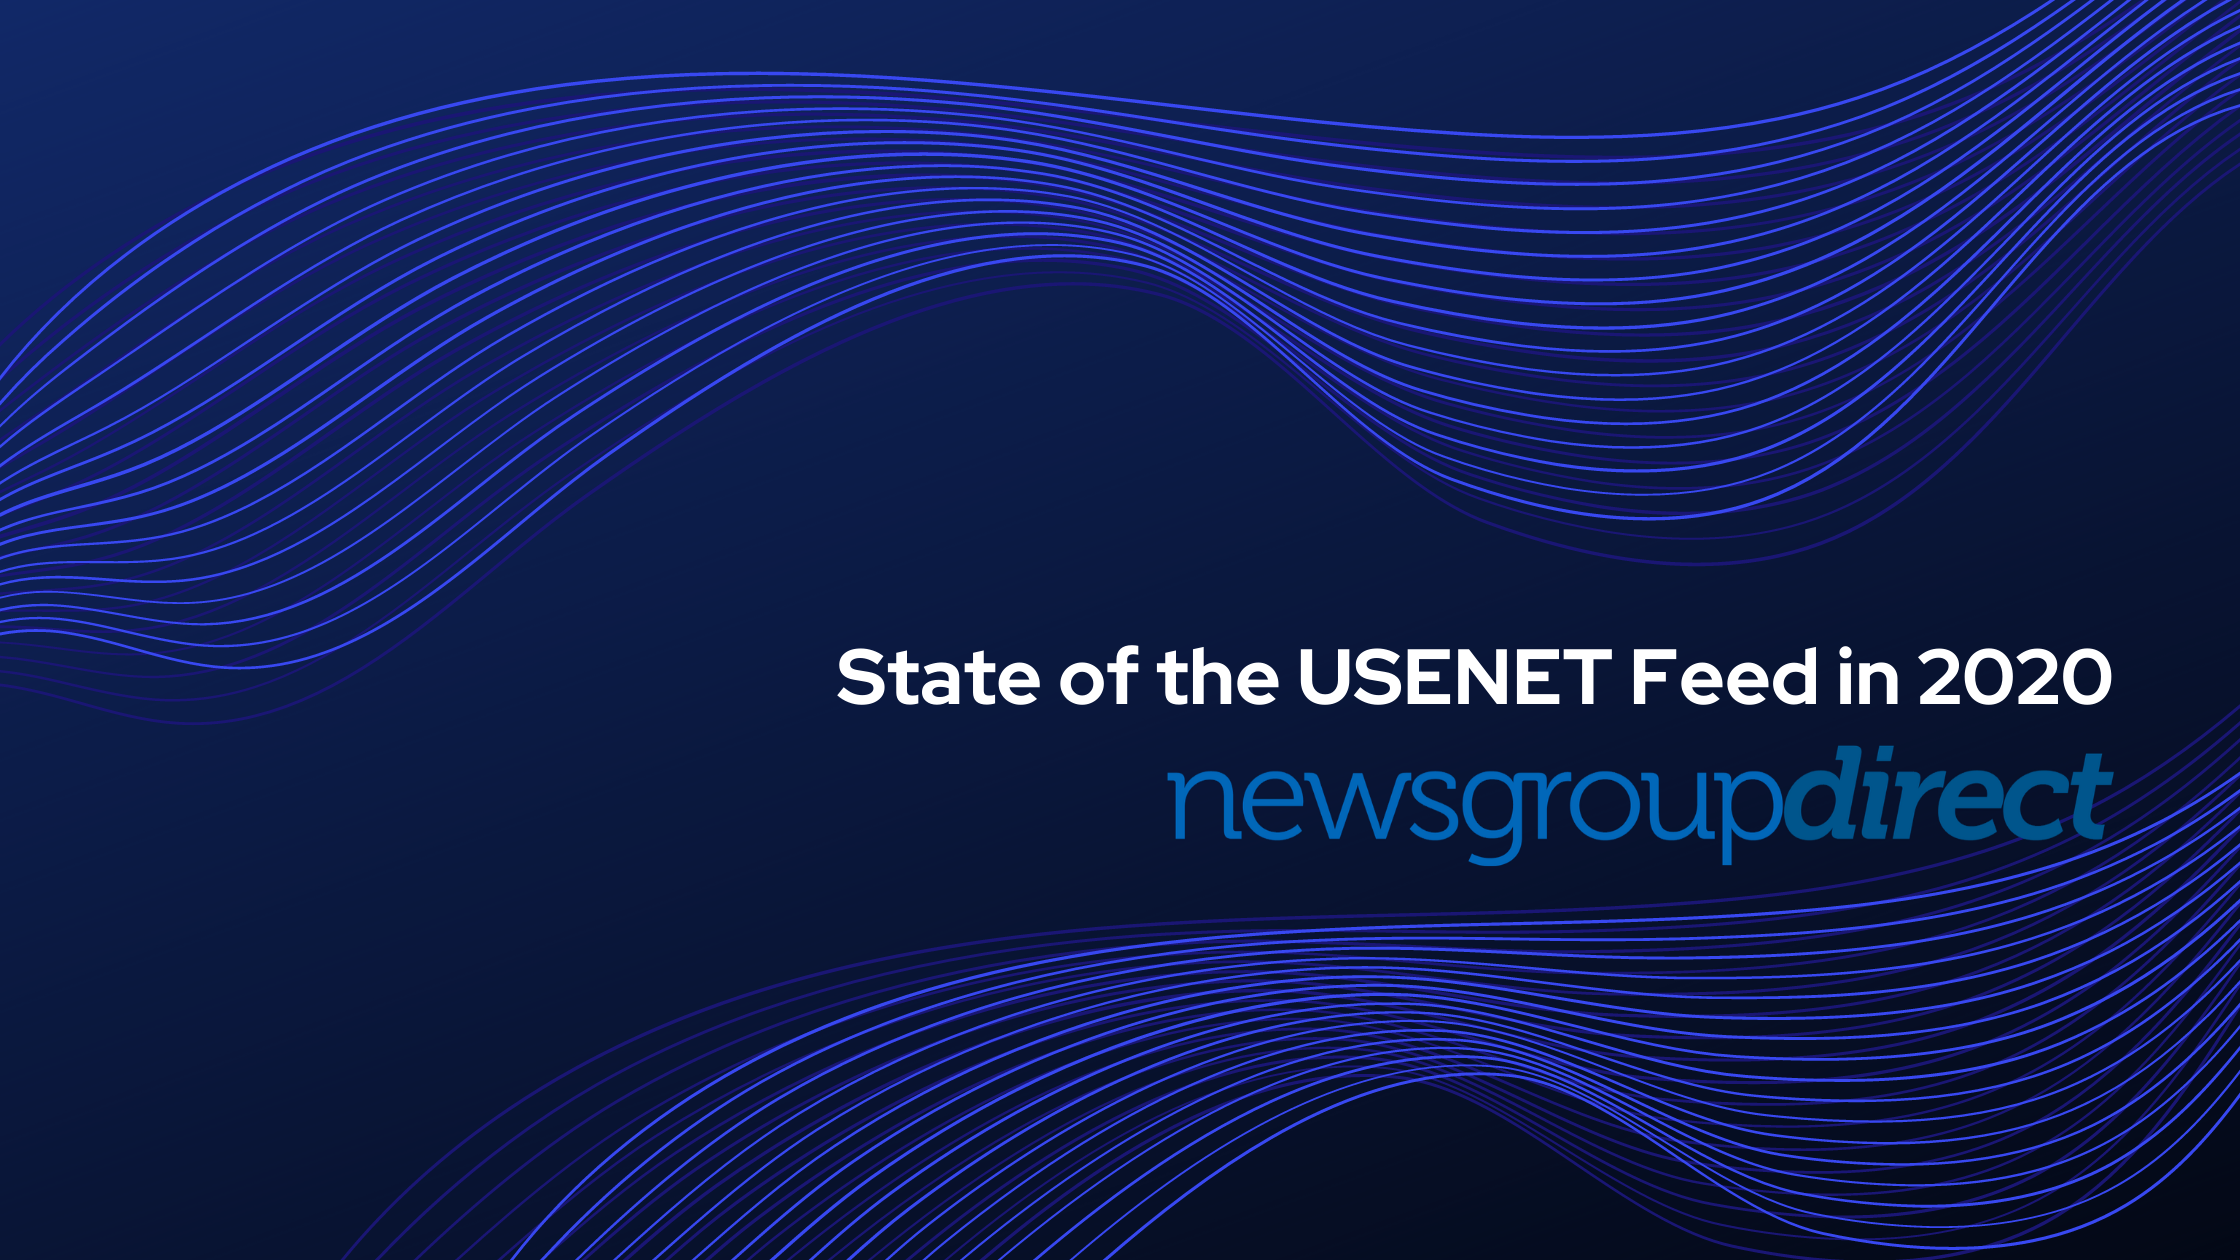 State of the USENET Feed in 2020